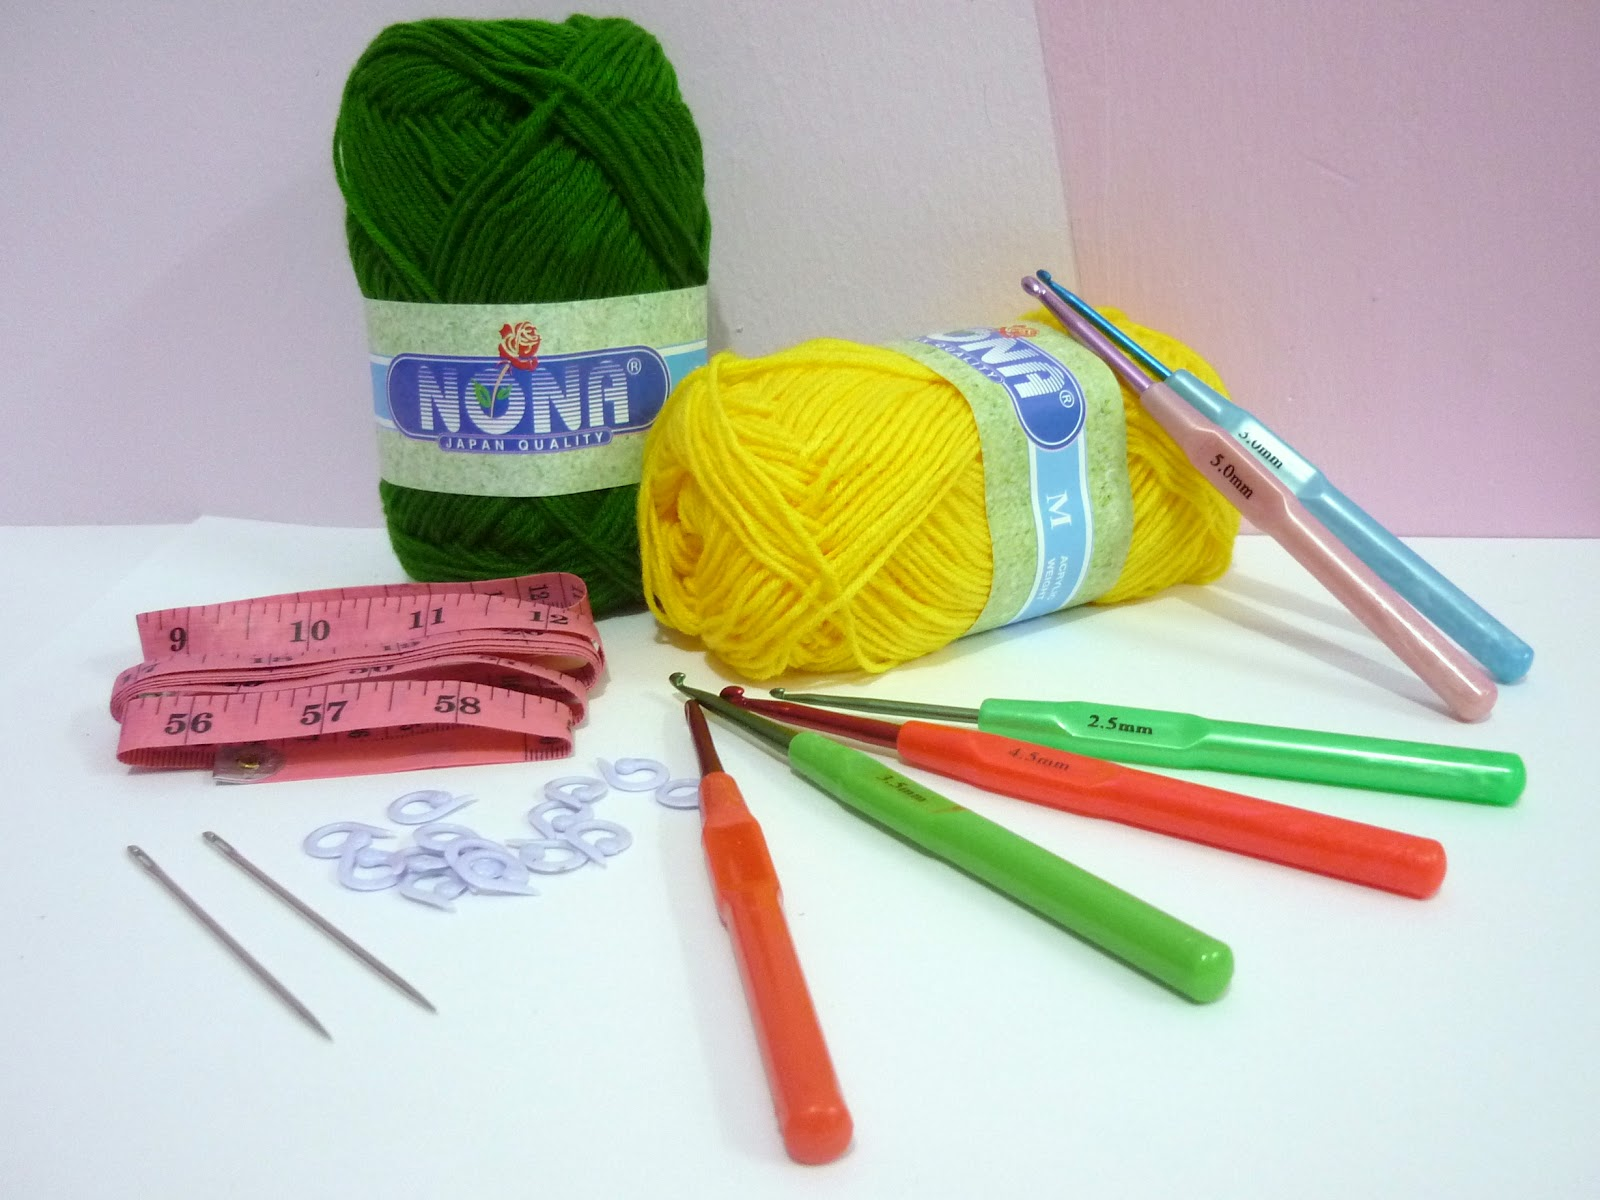 Crocheting Kit : Fun Crochet Tools: 5 in 1 Crochet Kit